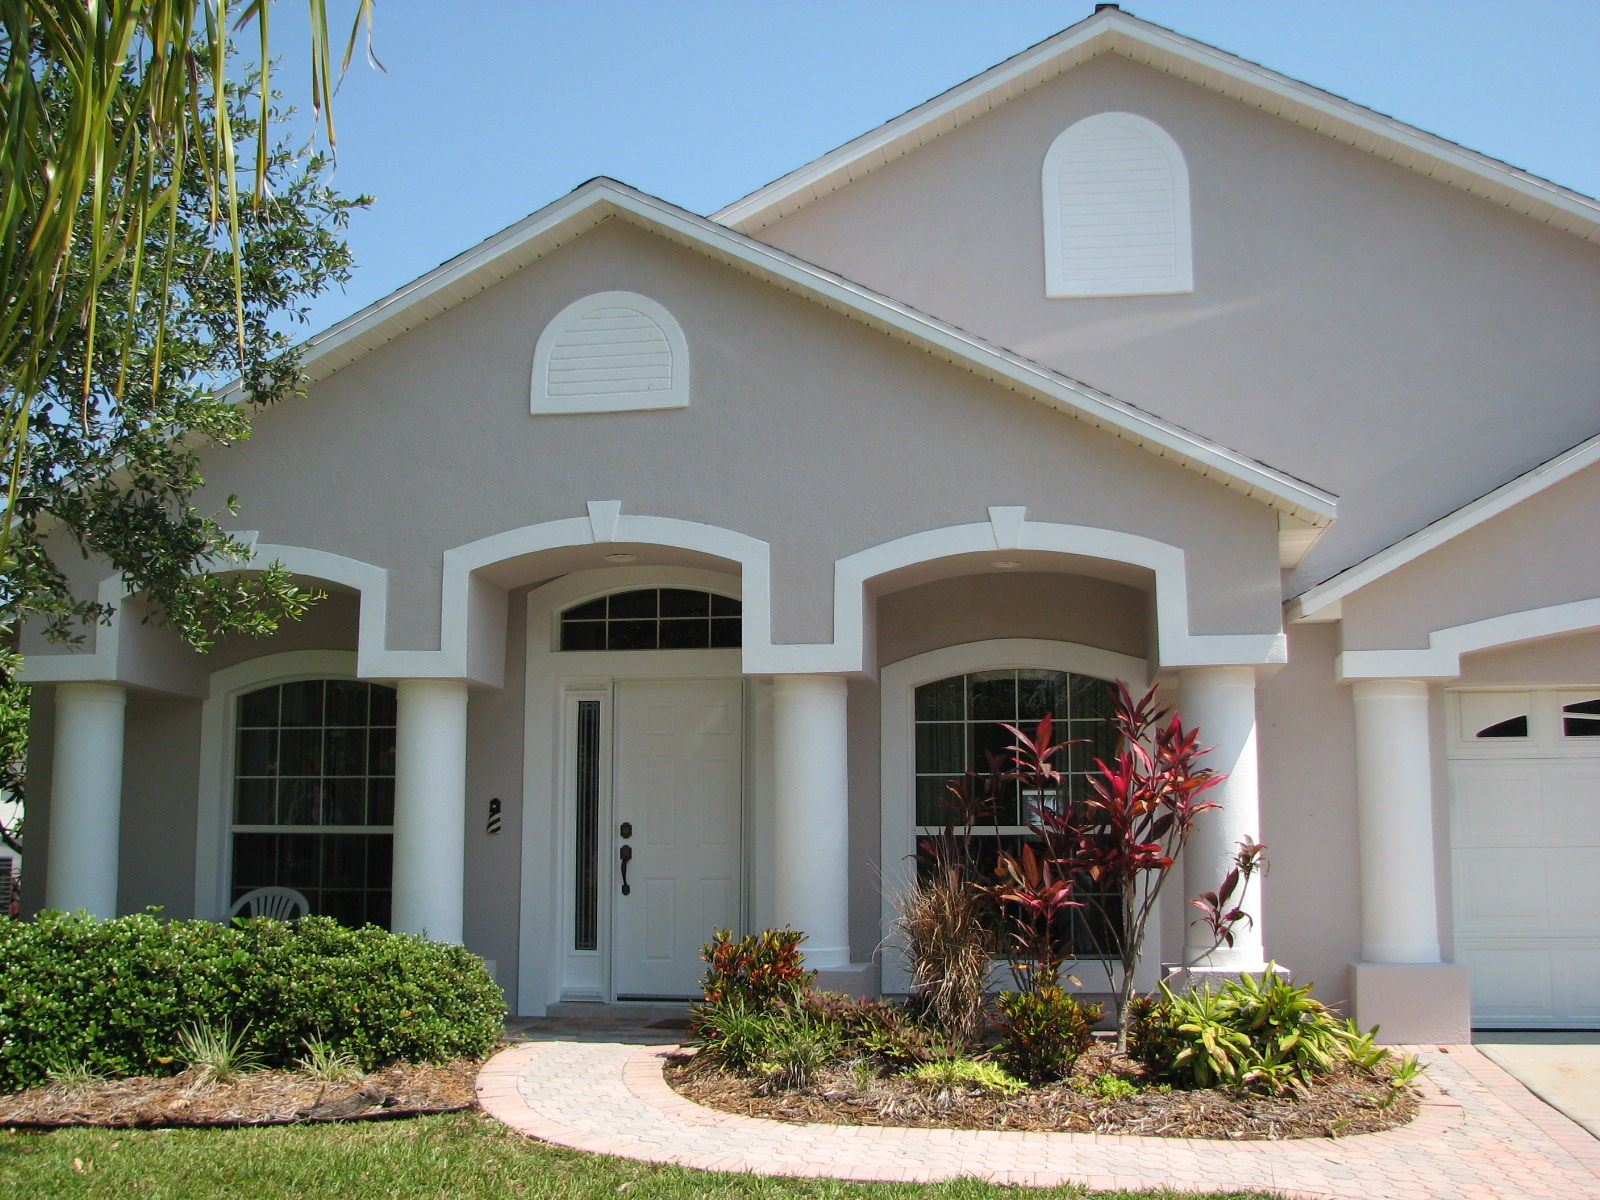 Stucco repair melbourne fl stucco cracks bulging stucco for Florida stucco